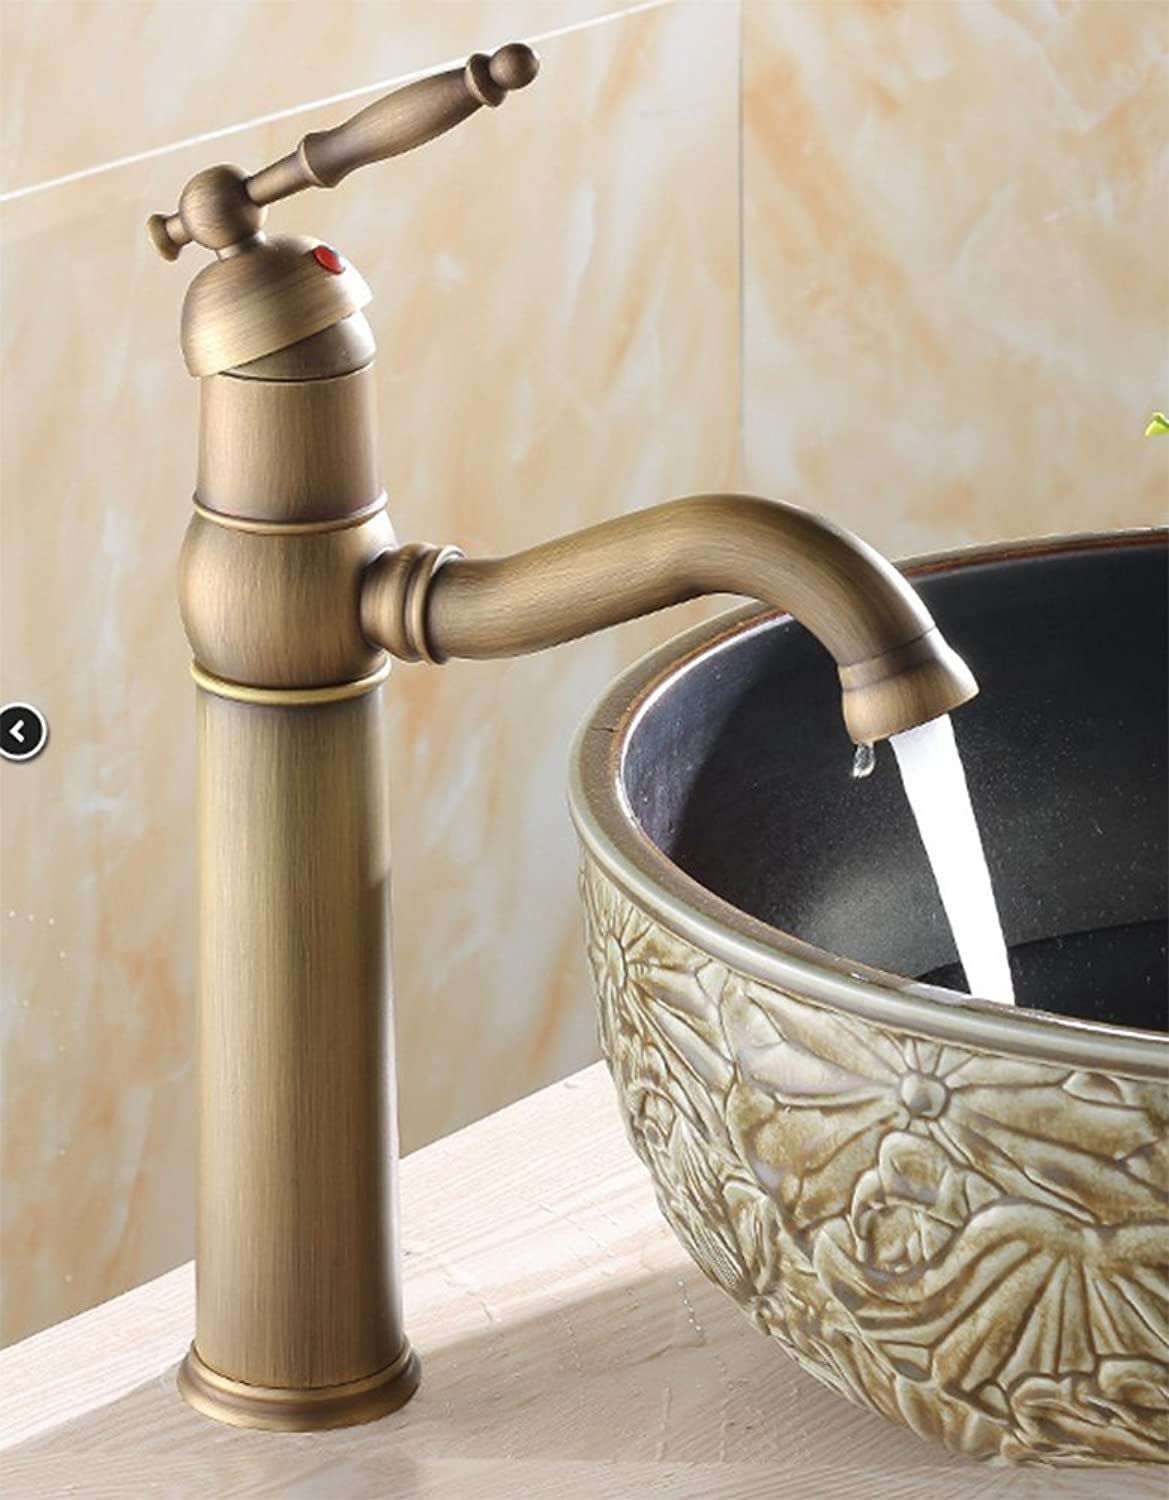 Hlluya Professional Sink Mixer Tap Kitchen Faucet Copper basin faucet hot and cold, the redation of the basin Faucet